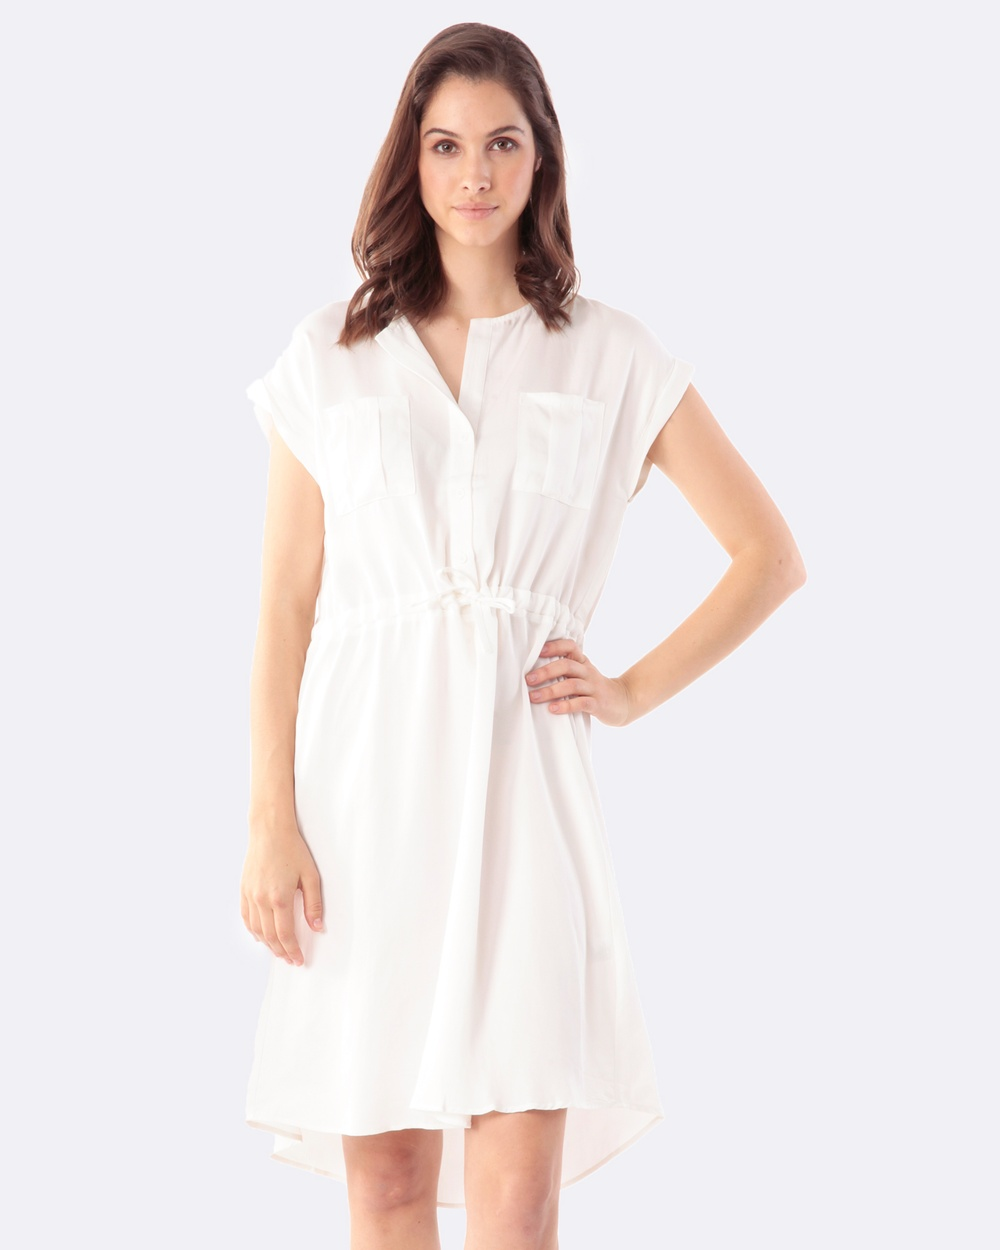 Amelius Poppy Dress Dresses White Poppy Dress